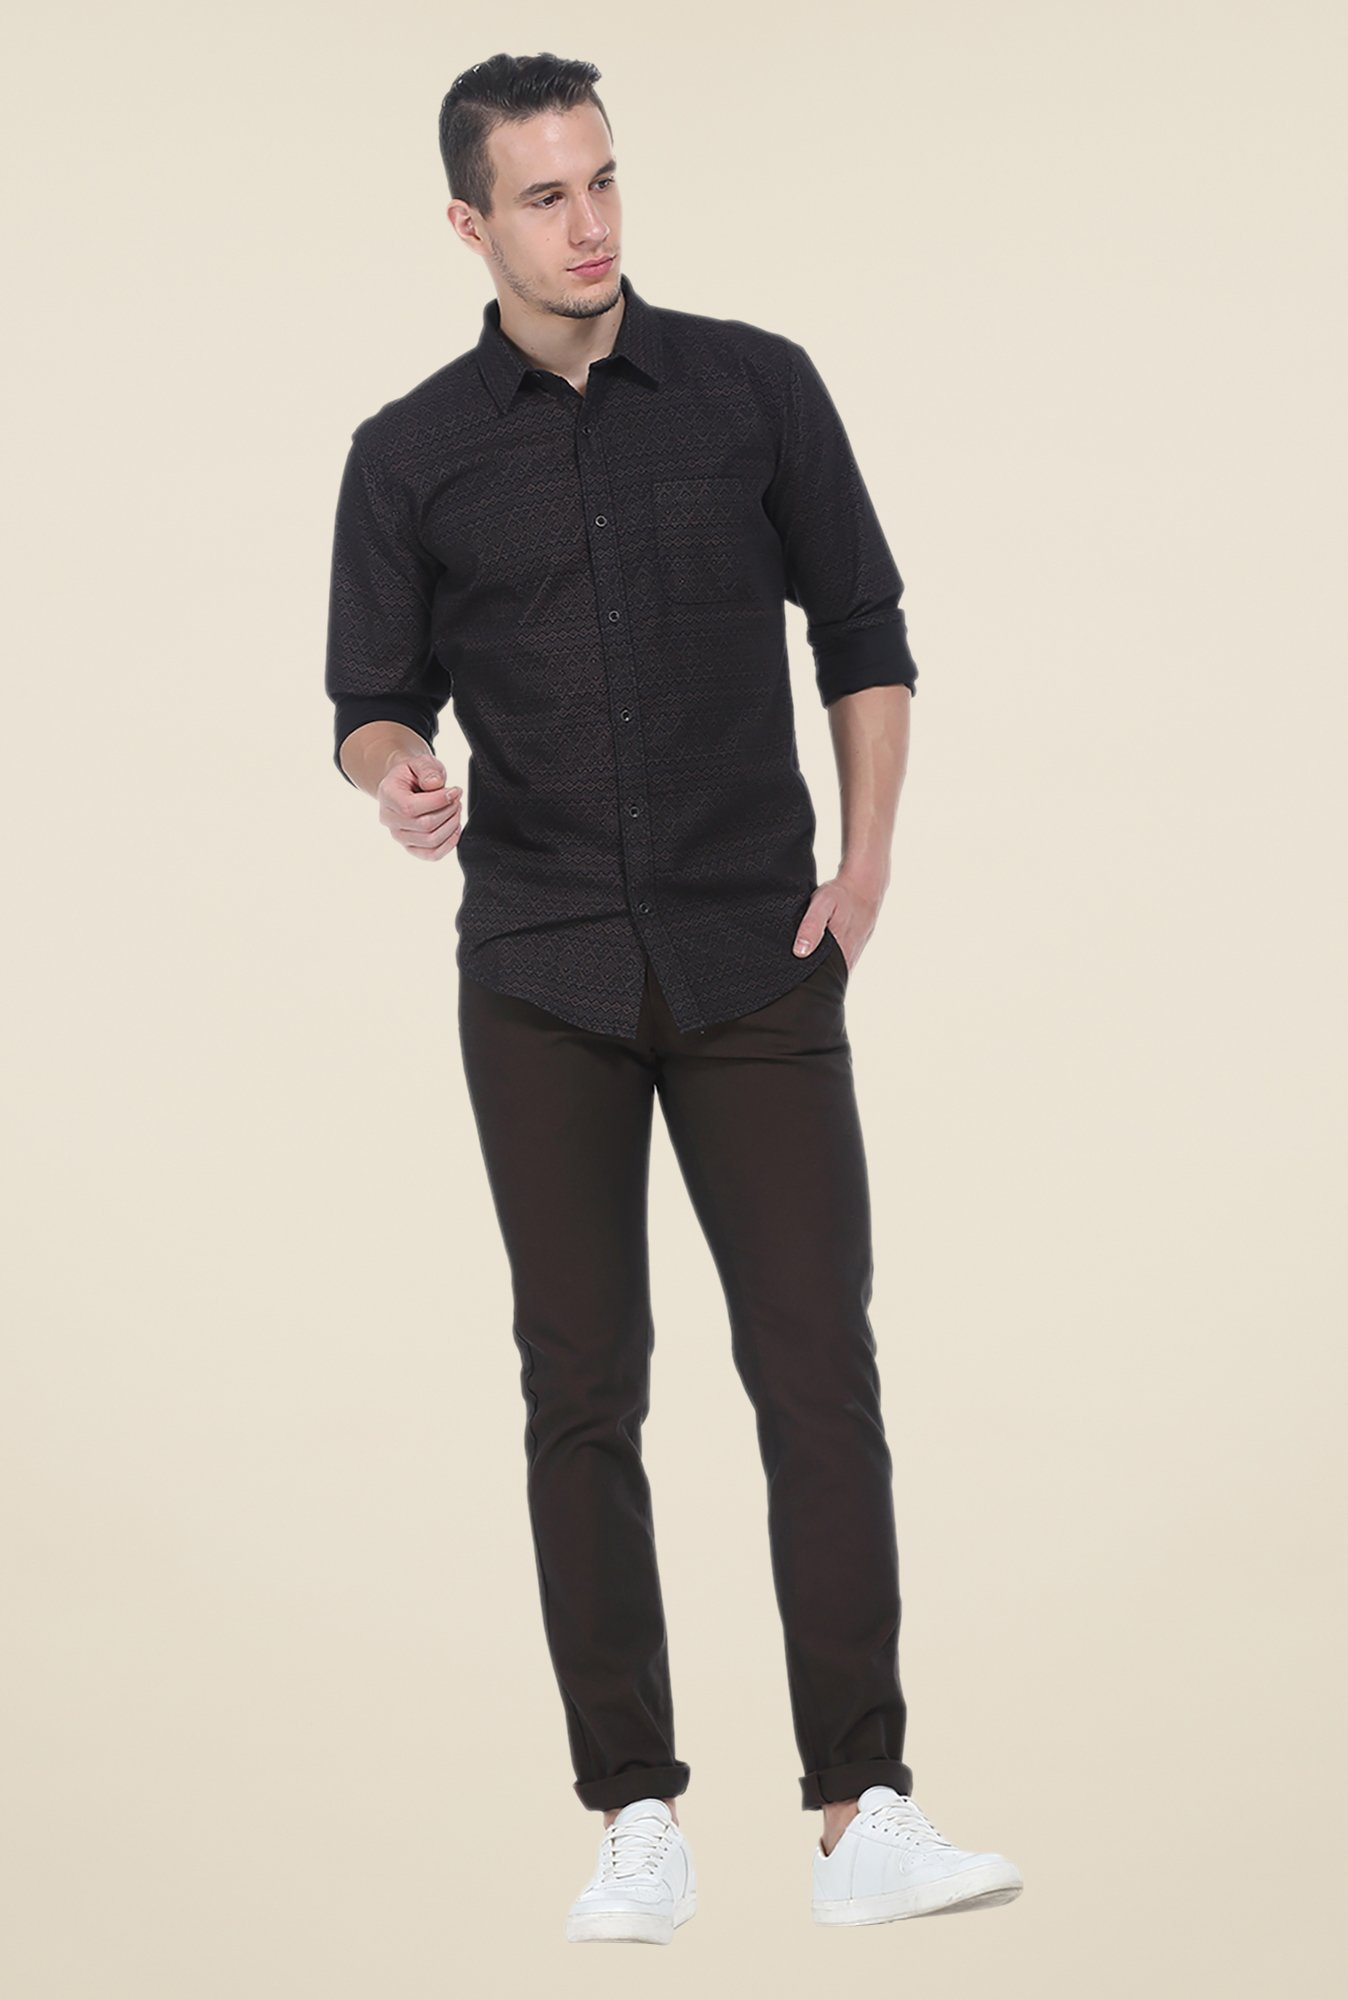 Basics Brown Printed Slim Fit Shirt